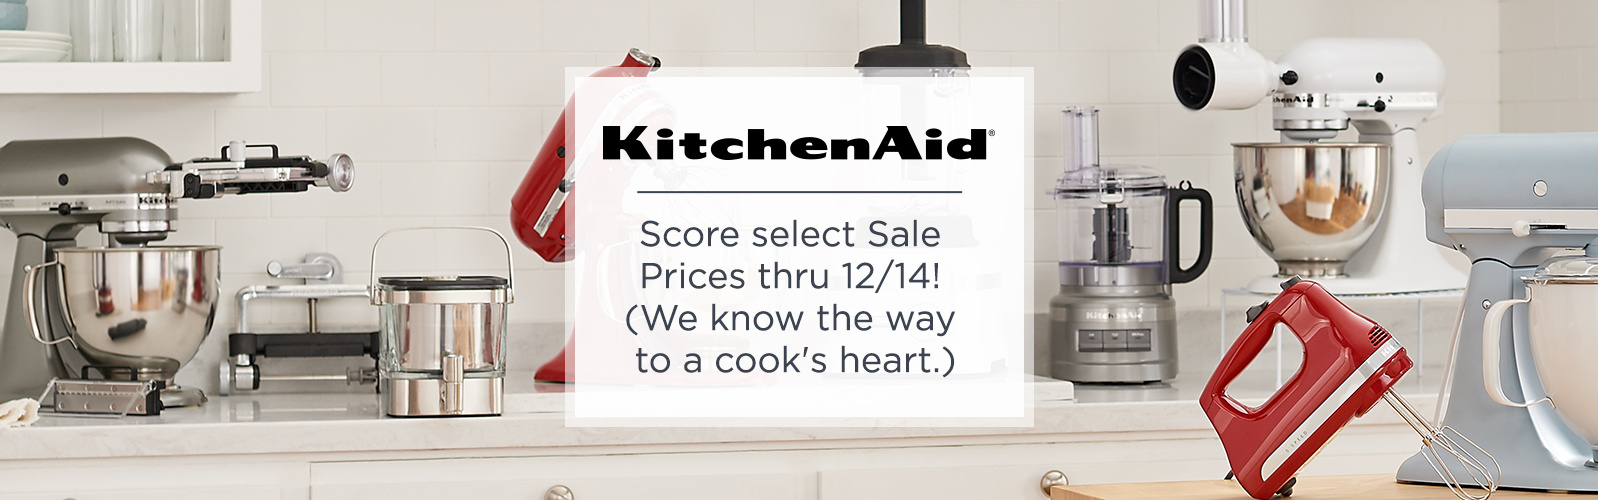 Kitchenaid Kitchenaid Appliances Amp Accessories Qvc Com